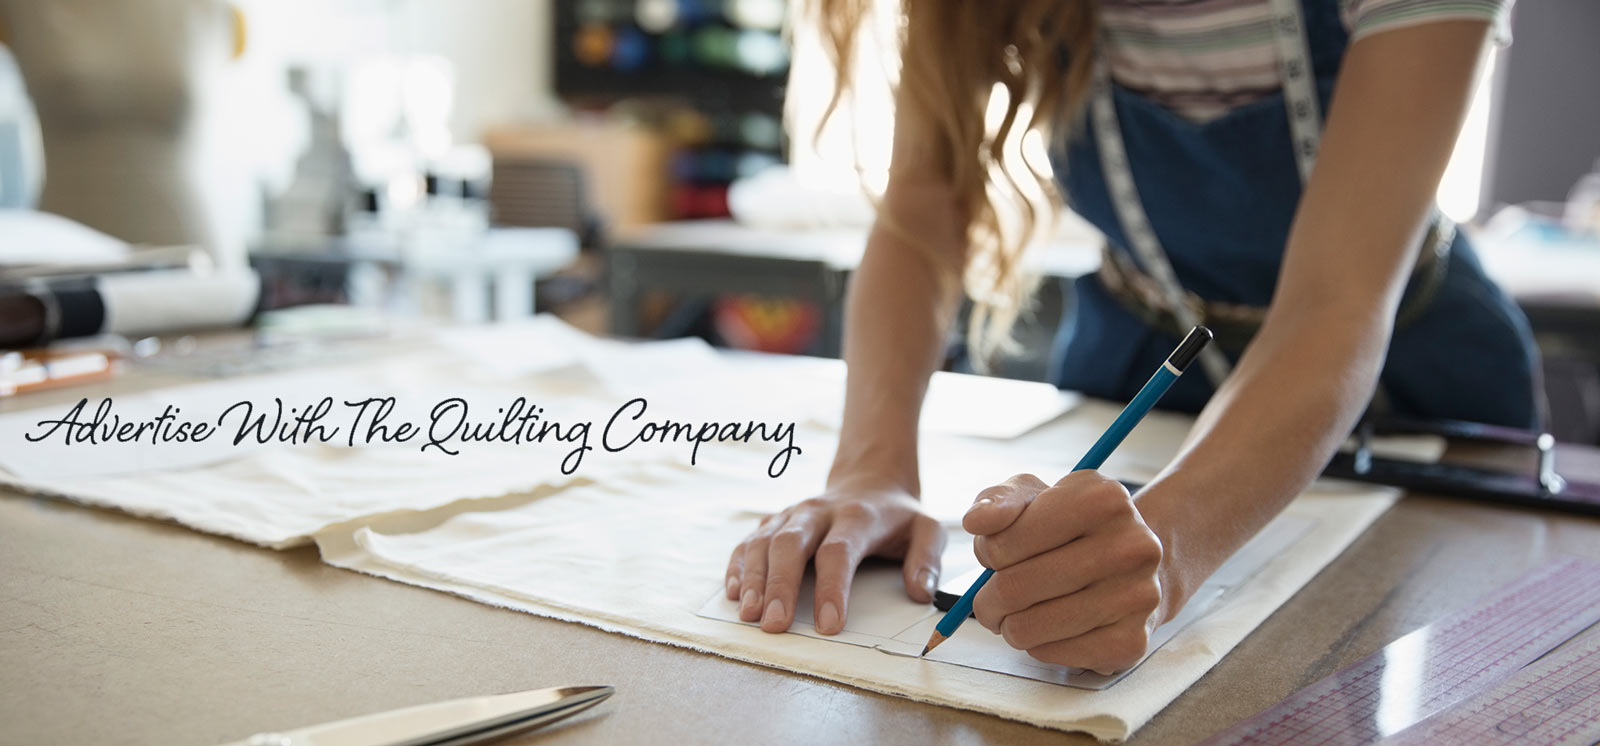 Advertise with The Quilting Company